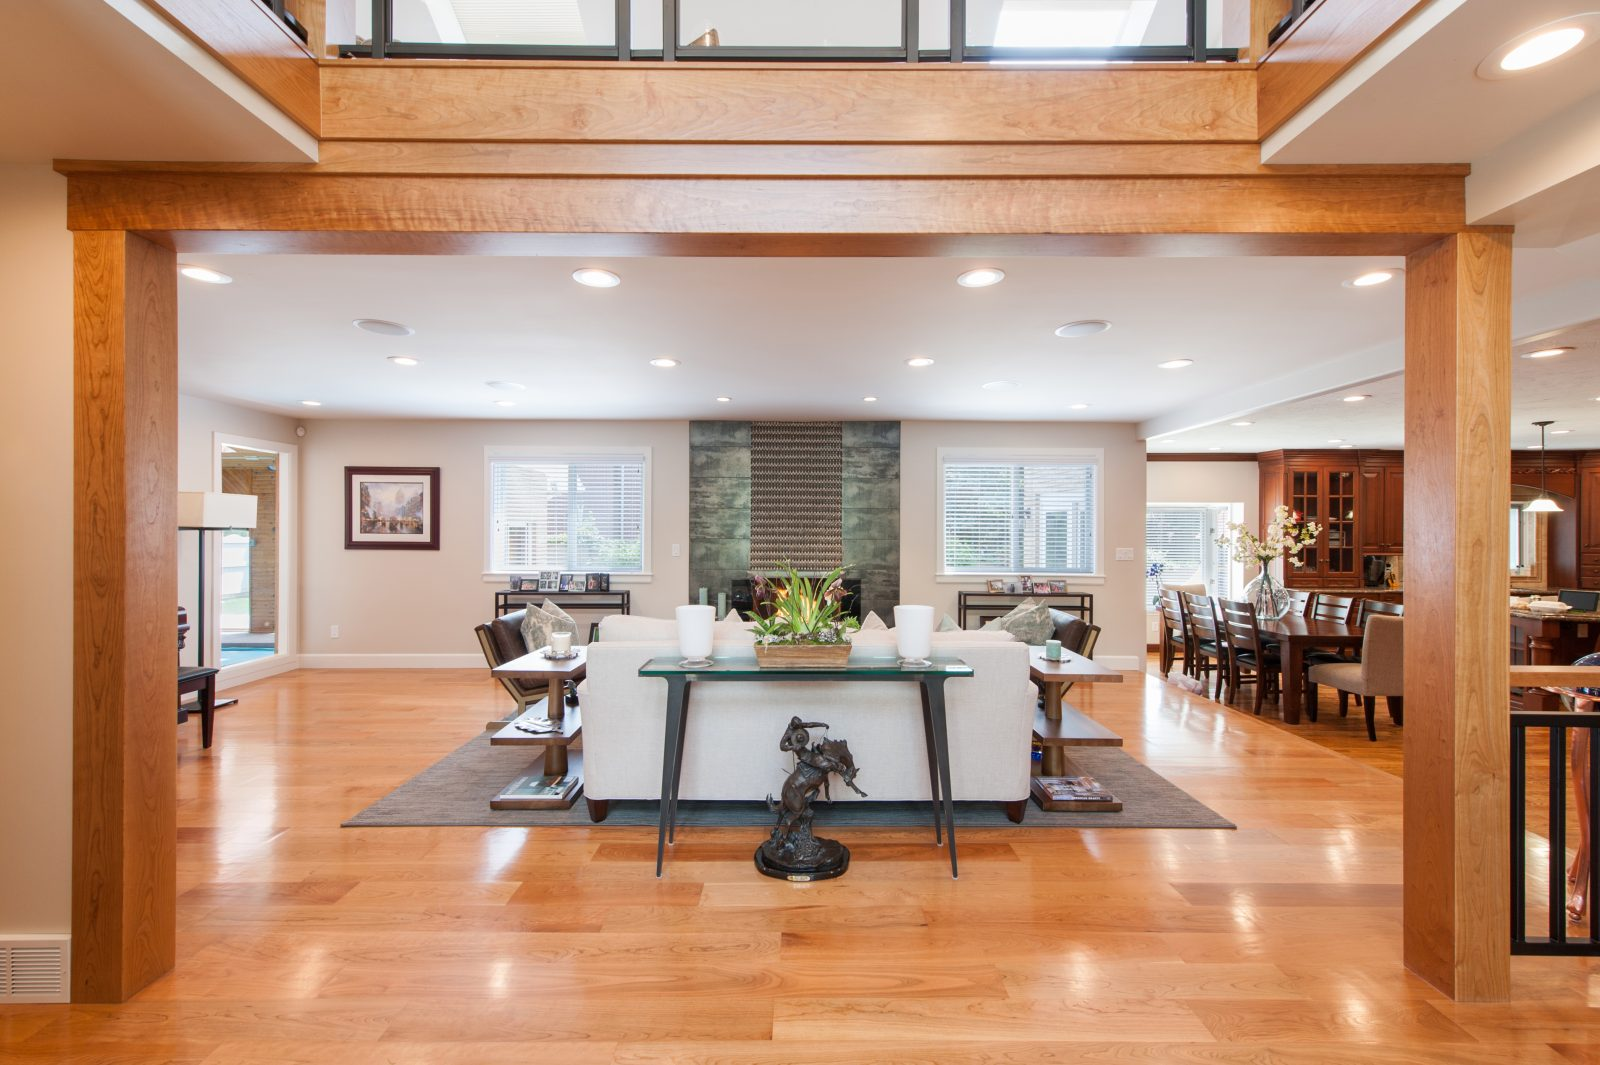 Briarcreek Contemporary, Interior Main Floor Remodel by Renovation Design